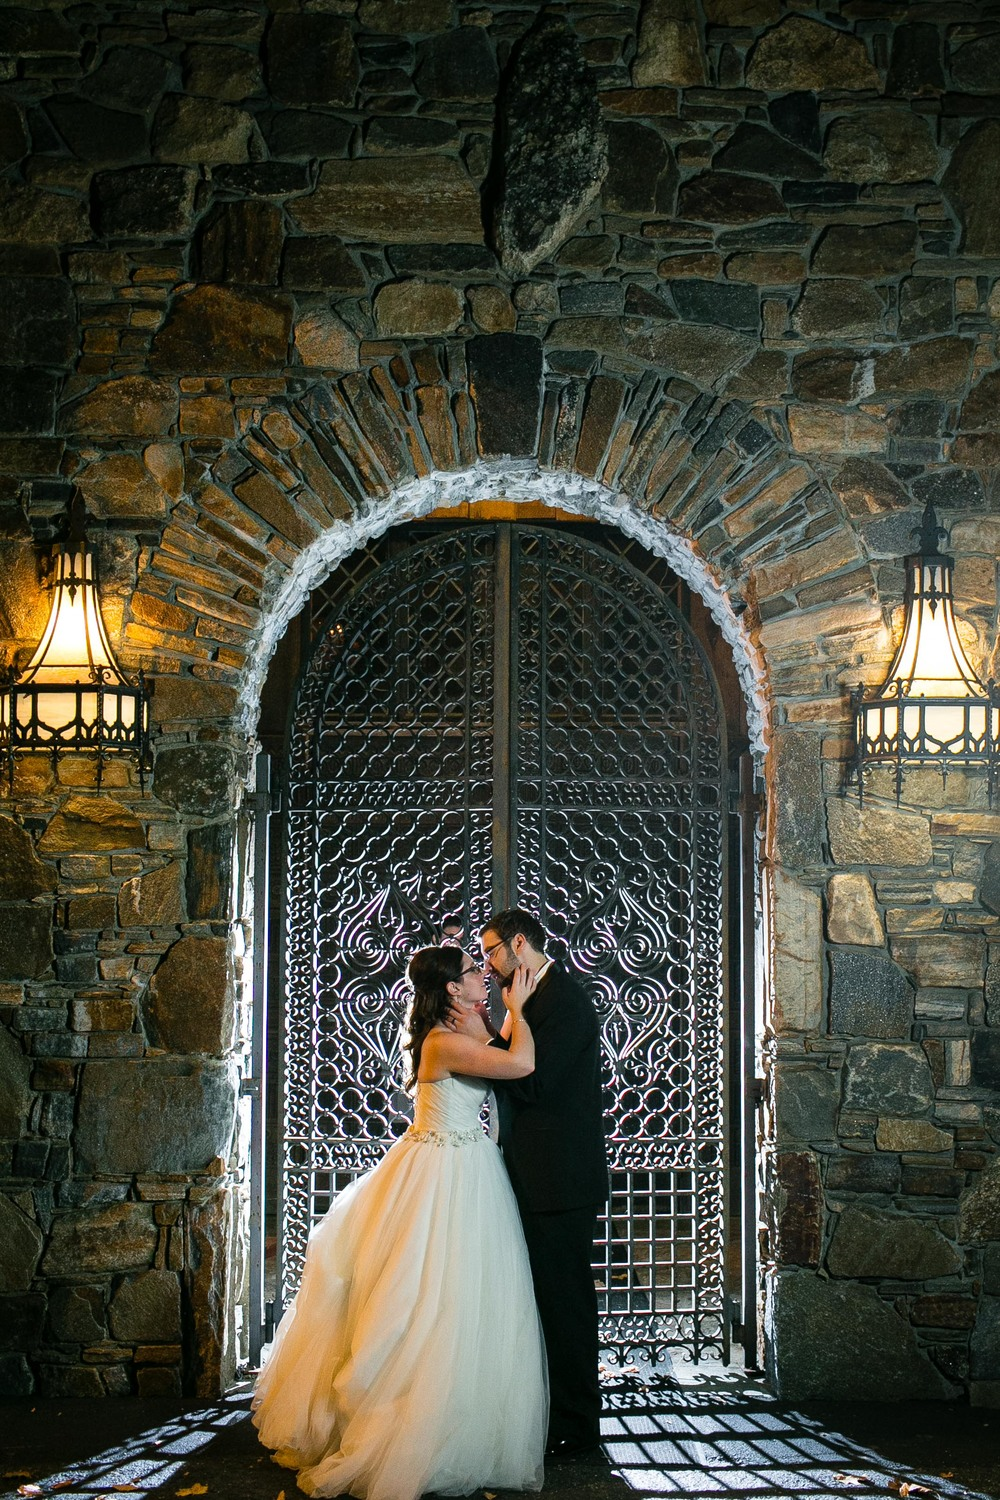 Creative-Wedding-Photography-Bill-Millers-Castle-Connecticut-Jacek-Dolata-Photography-2.jpg